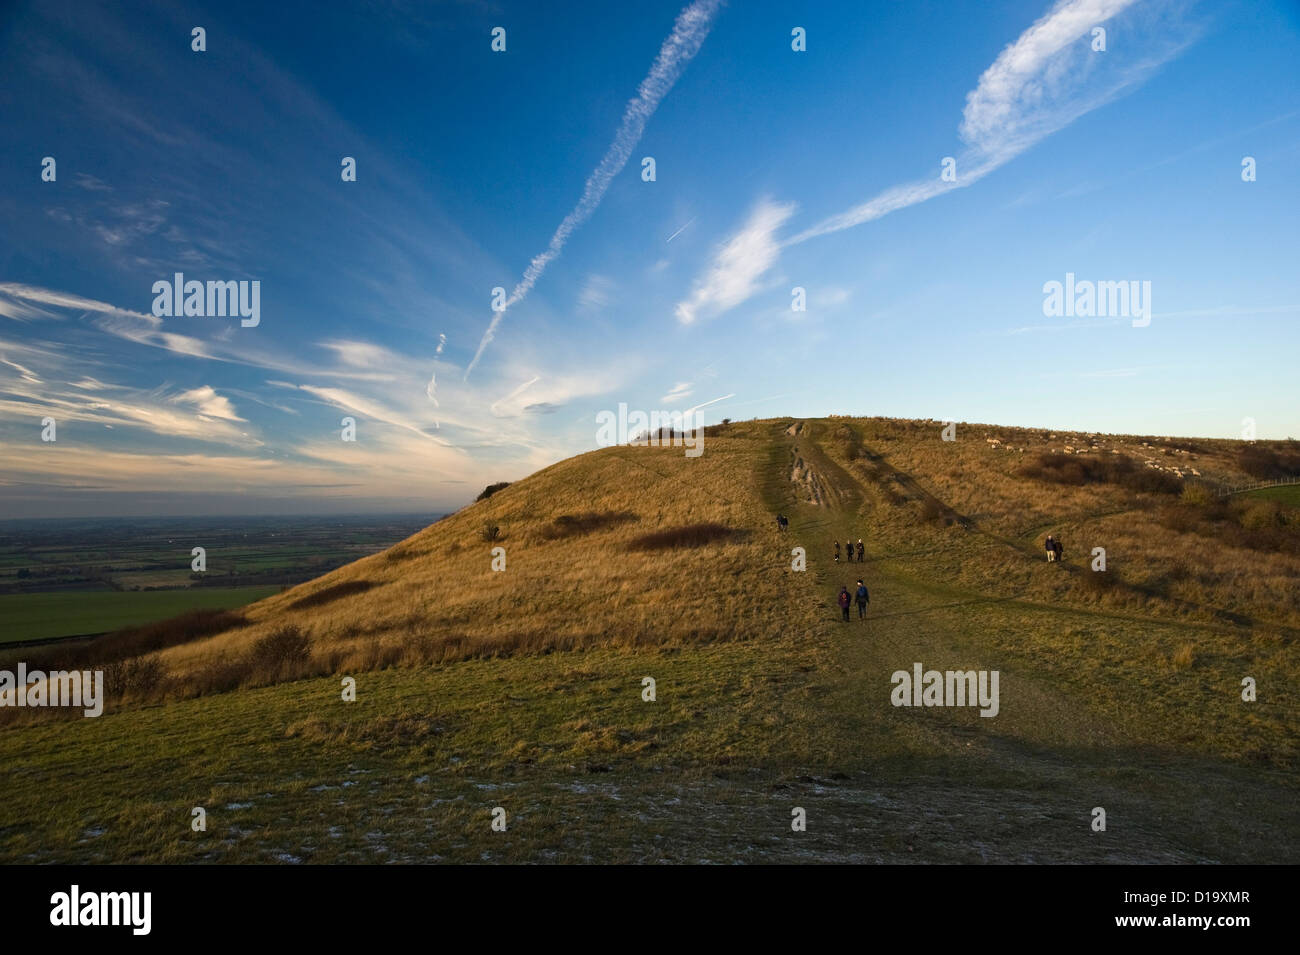 Walkers on Ivinghoe Beacon at the end of The Ridgeway National Trail, Buckinghamshire, UK - Stock Image